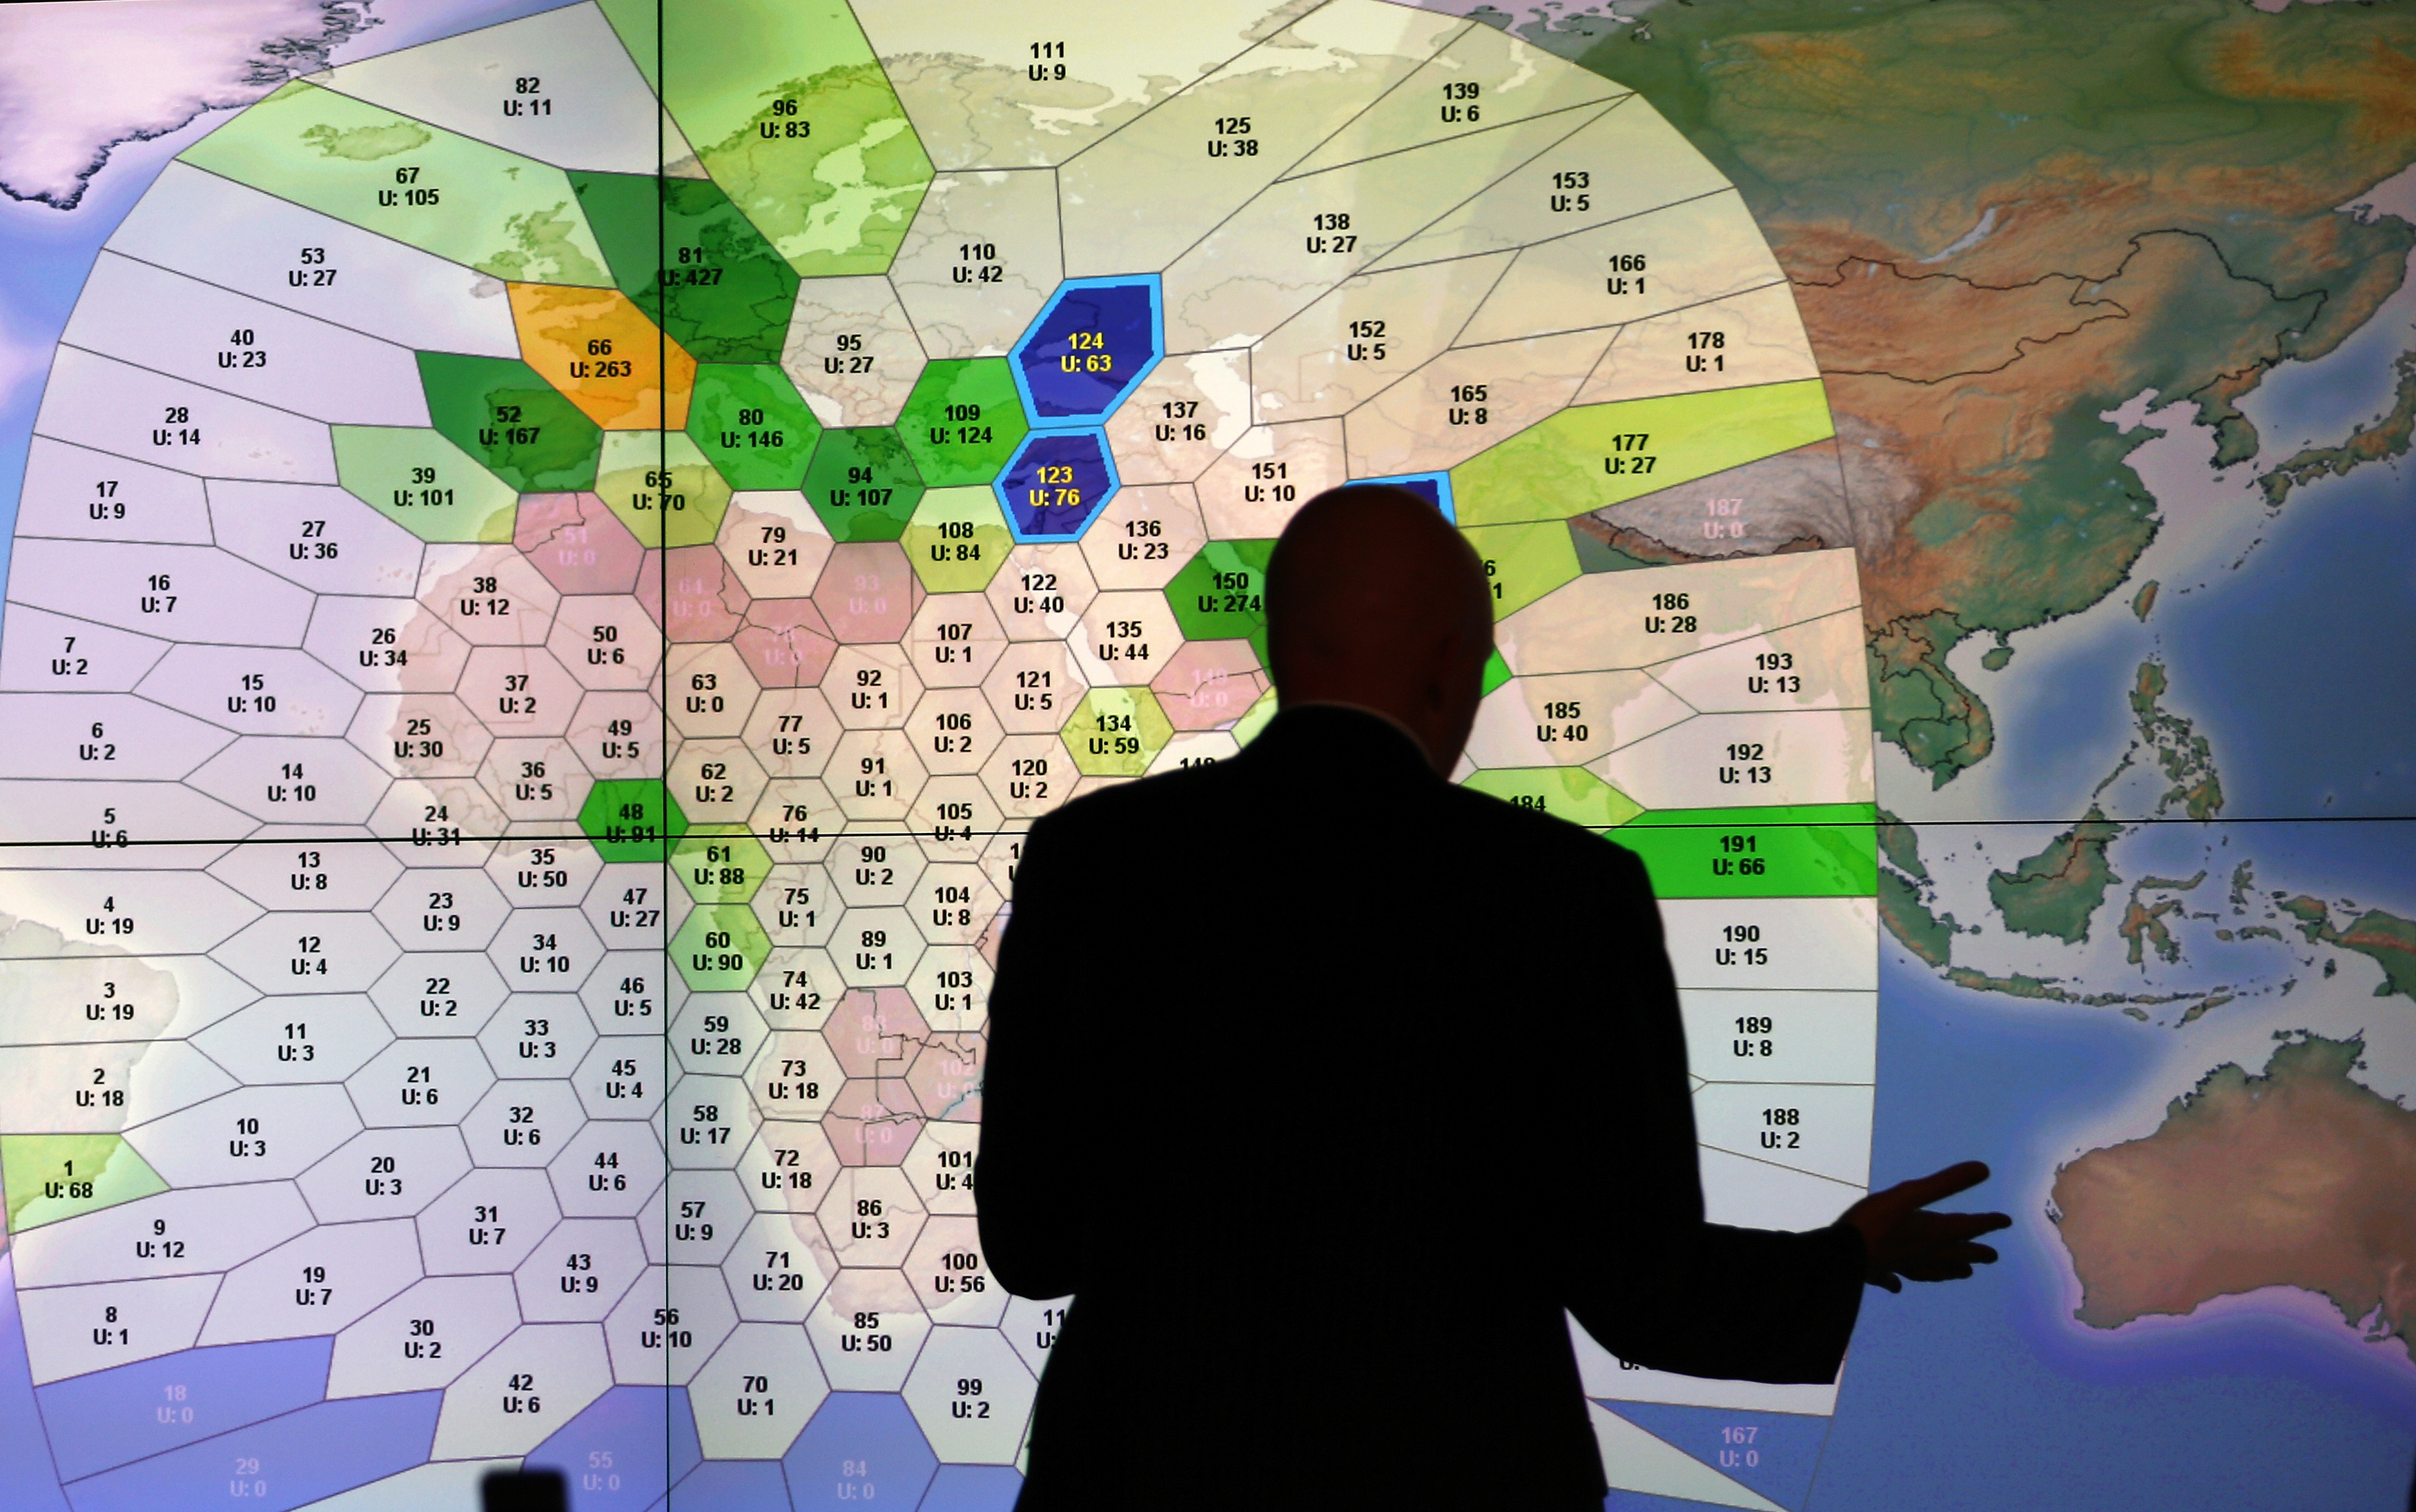 A member of staff at satellite communications company Inmarsat, who helped analyze  pings  via satellite, works in front of a screen showing subscribers using their service throughout the world at their headquarters in London on March 25, 2014.